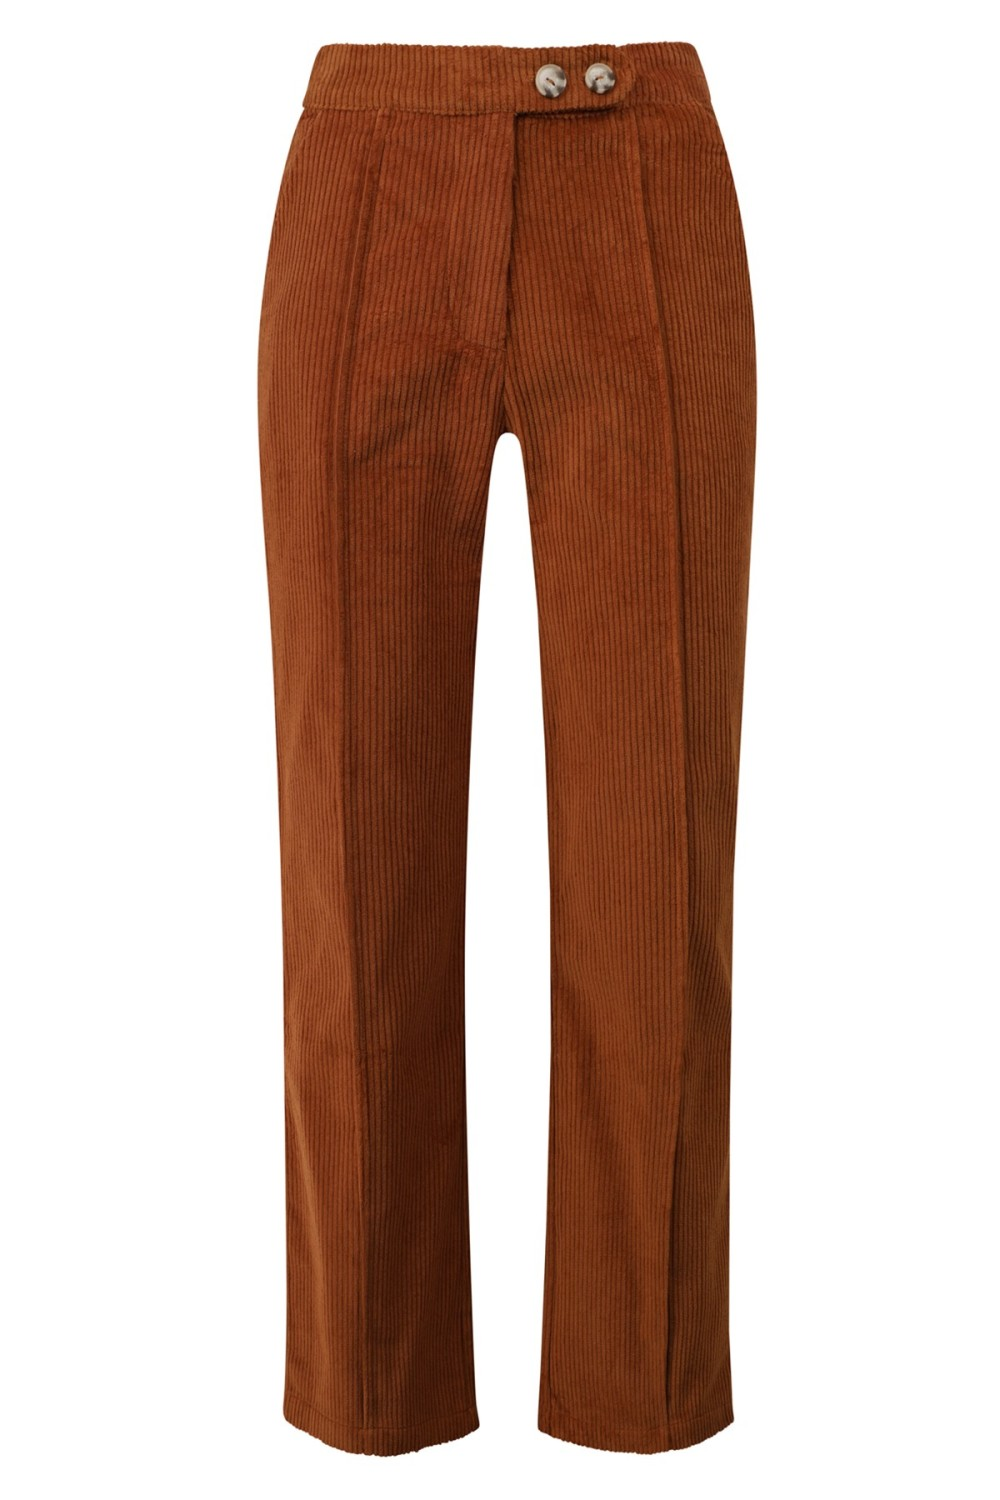 Native Youth broek Bruin 169